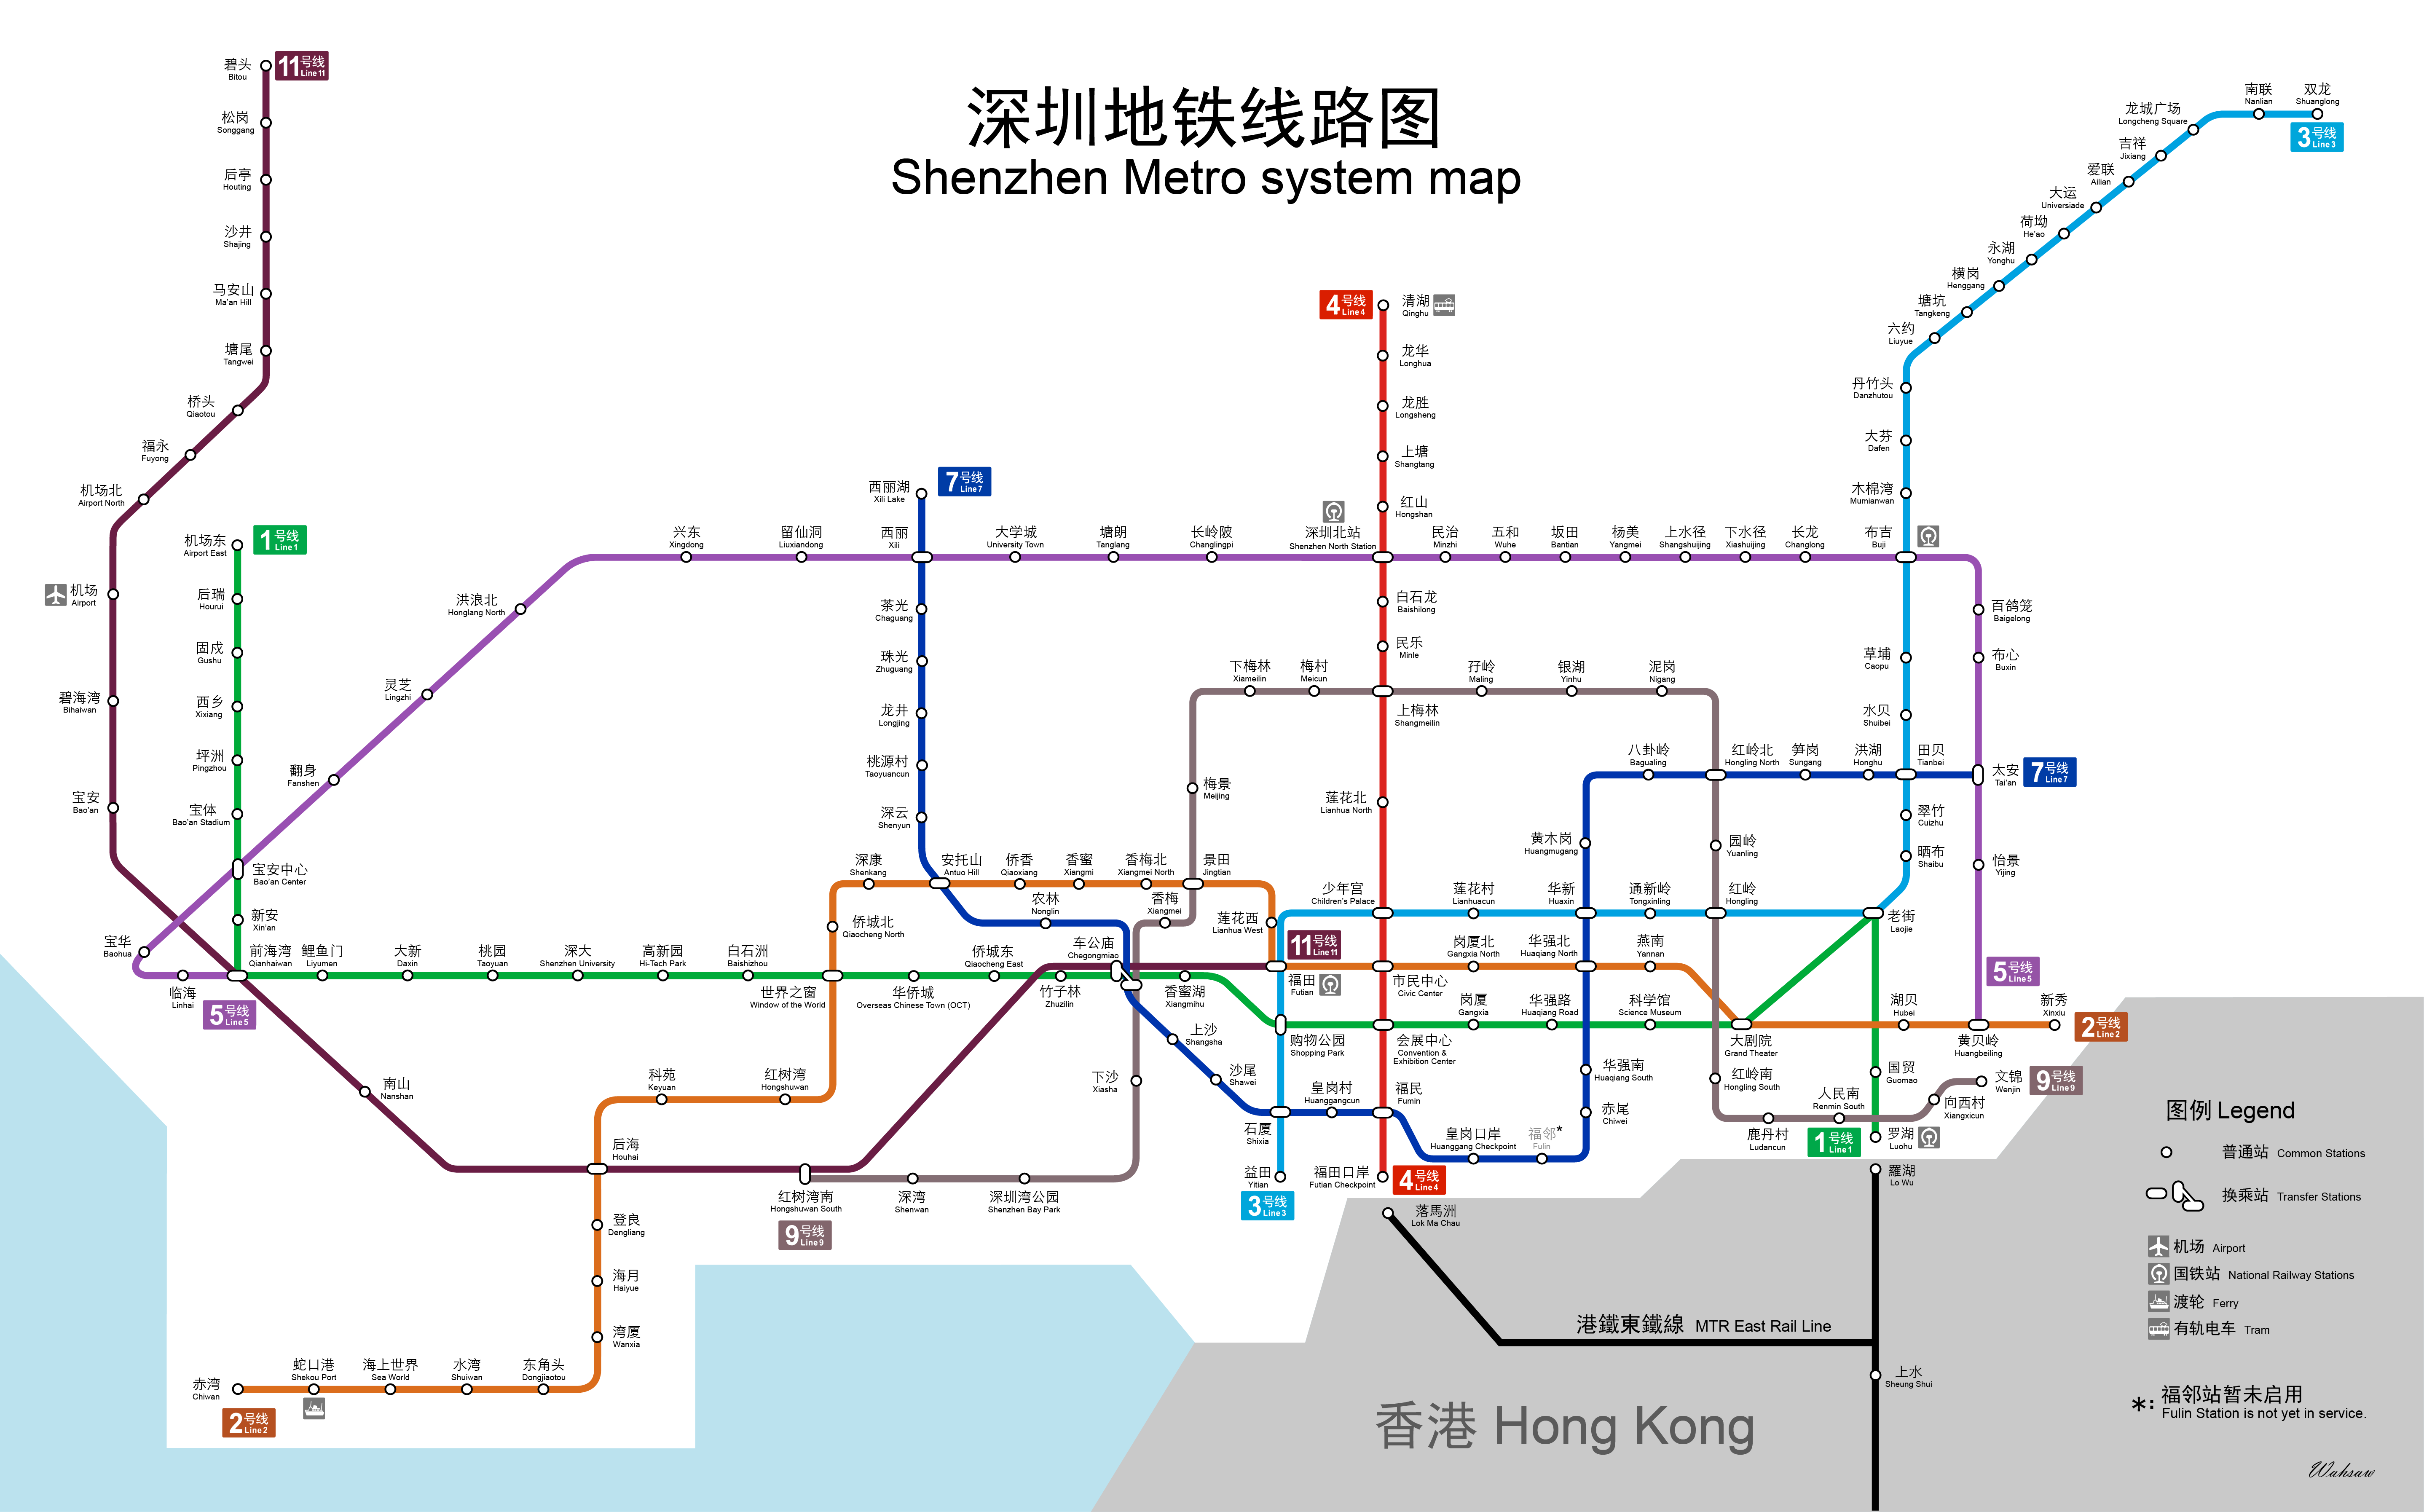 Sweden Subway Map.China Subway And Metro Train Maps